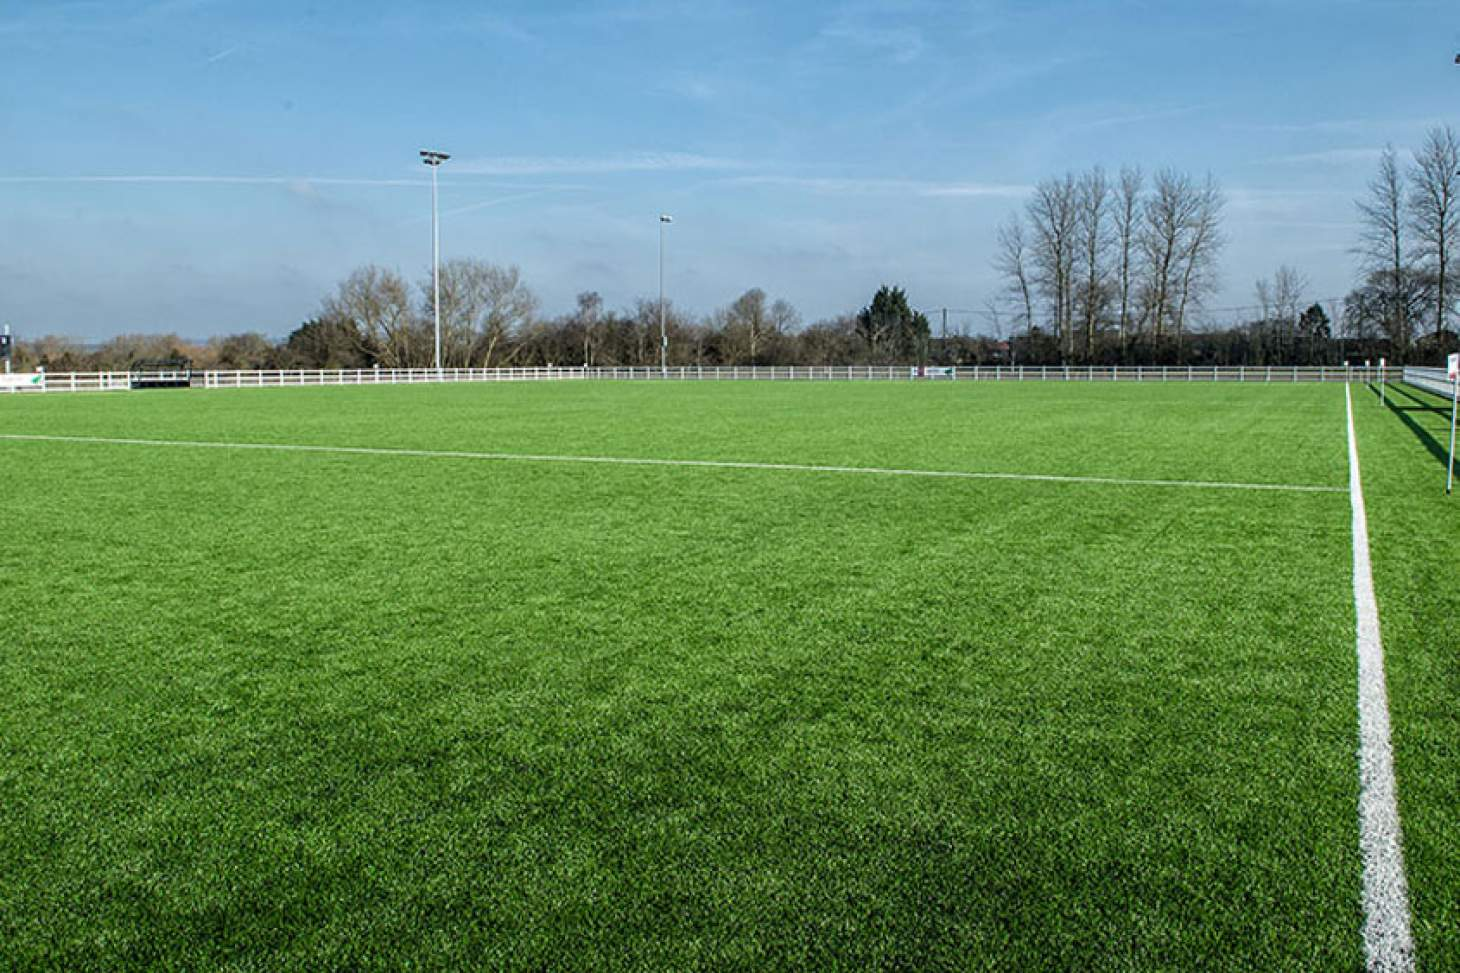 PlayFootball Wanstead 8 a side | 3G Astroturf football pitch